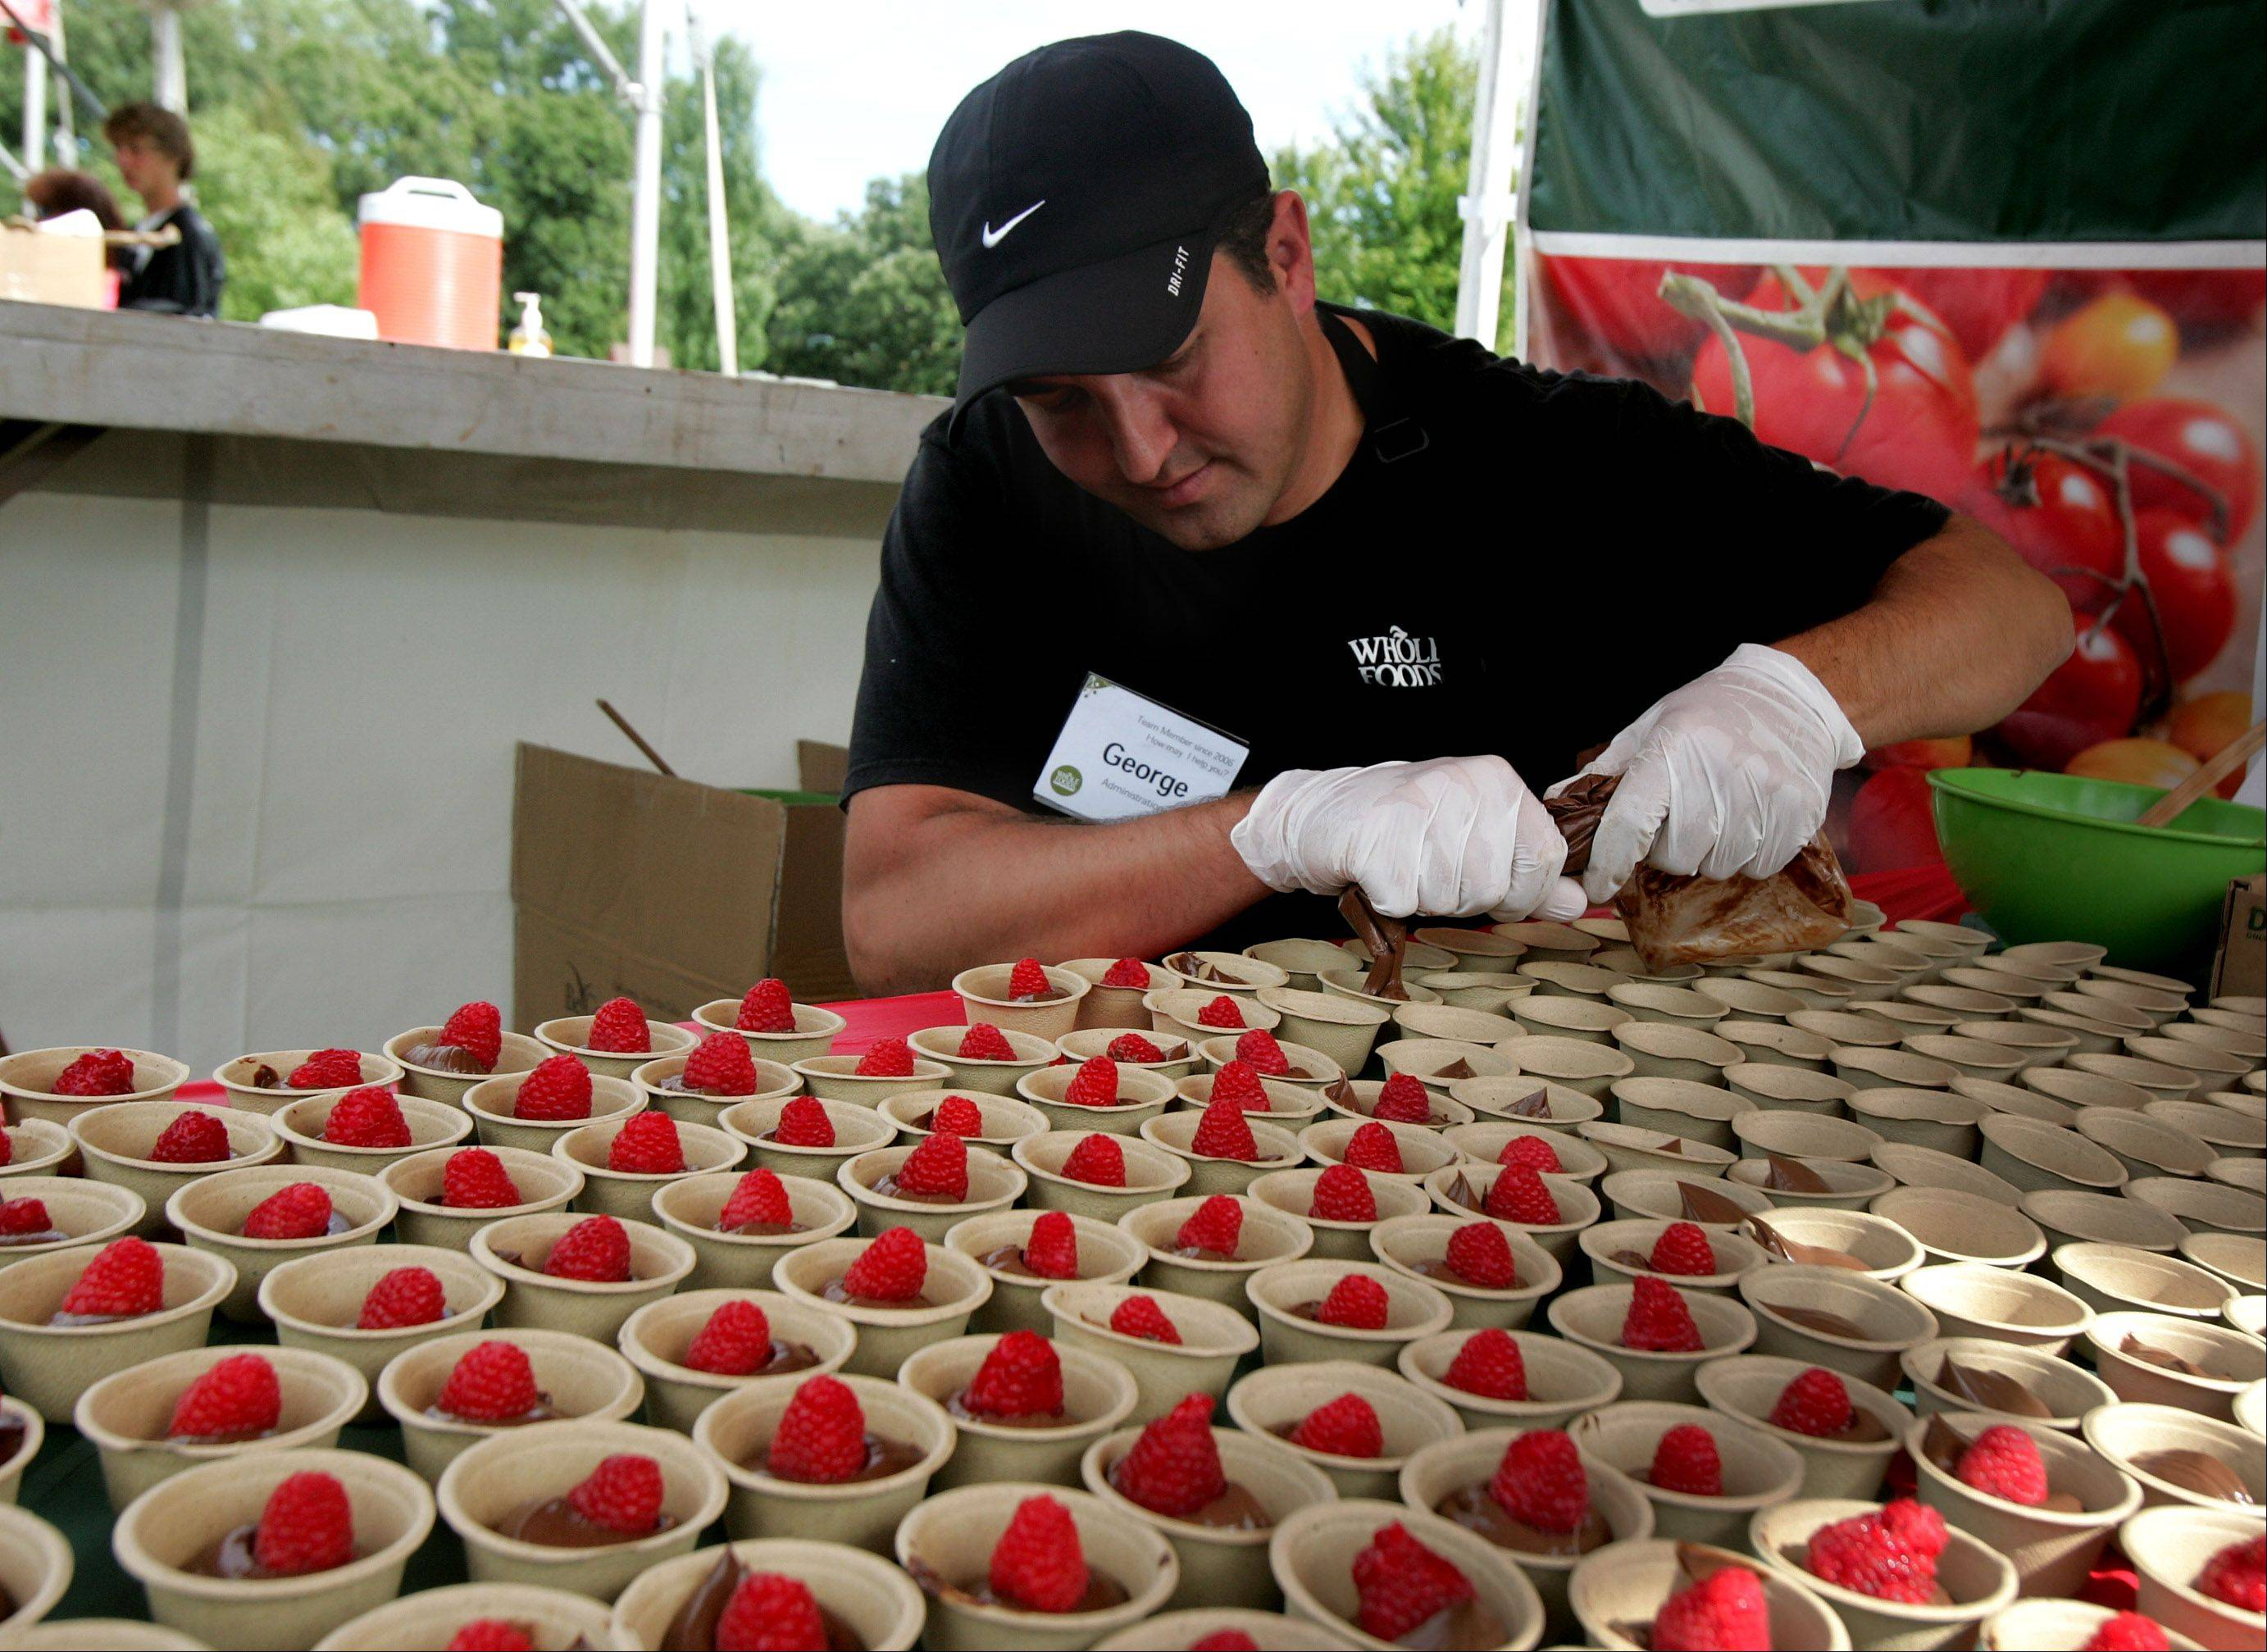 George Economos of Whole Food Markets makes vegan chocolate mousse with organic raspberries during the 5th Annual Taste of the Towns Sunday at Paulus Park in Lake Zurich.